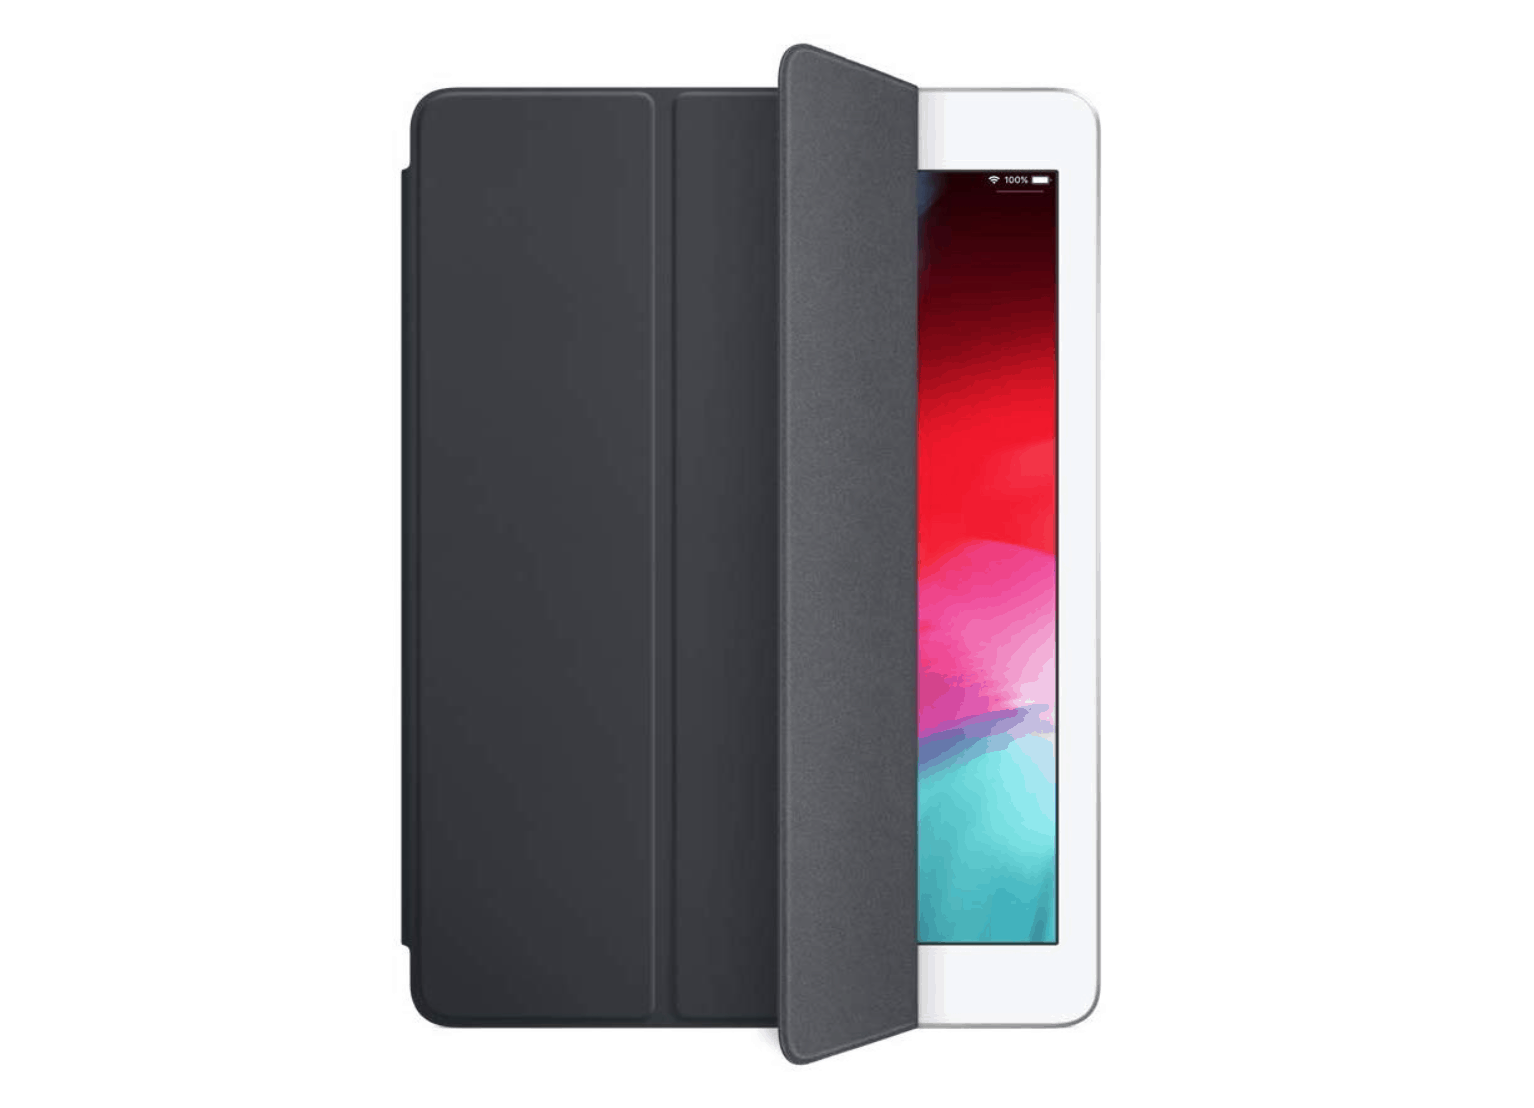 Official Smart Cover for the iPad 9.7 inch Model Starts at $23.62